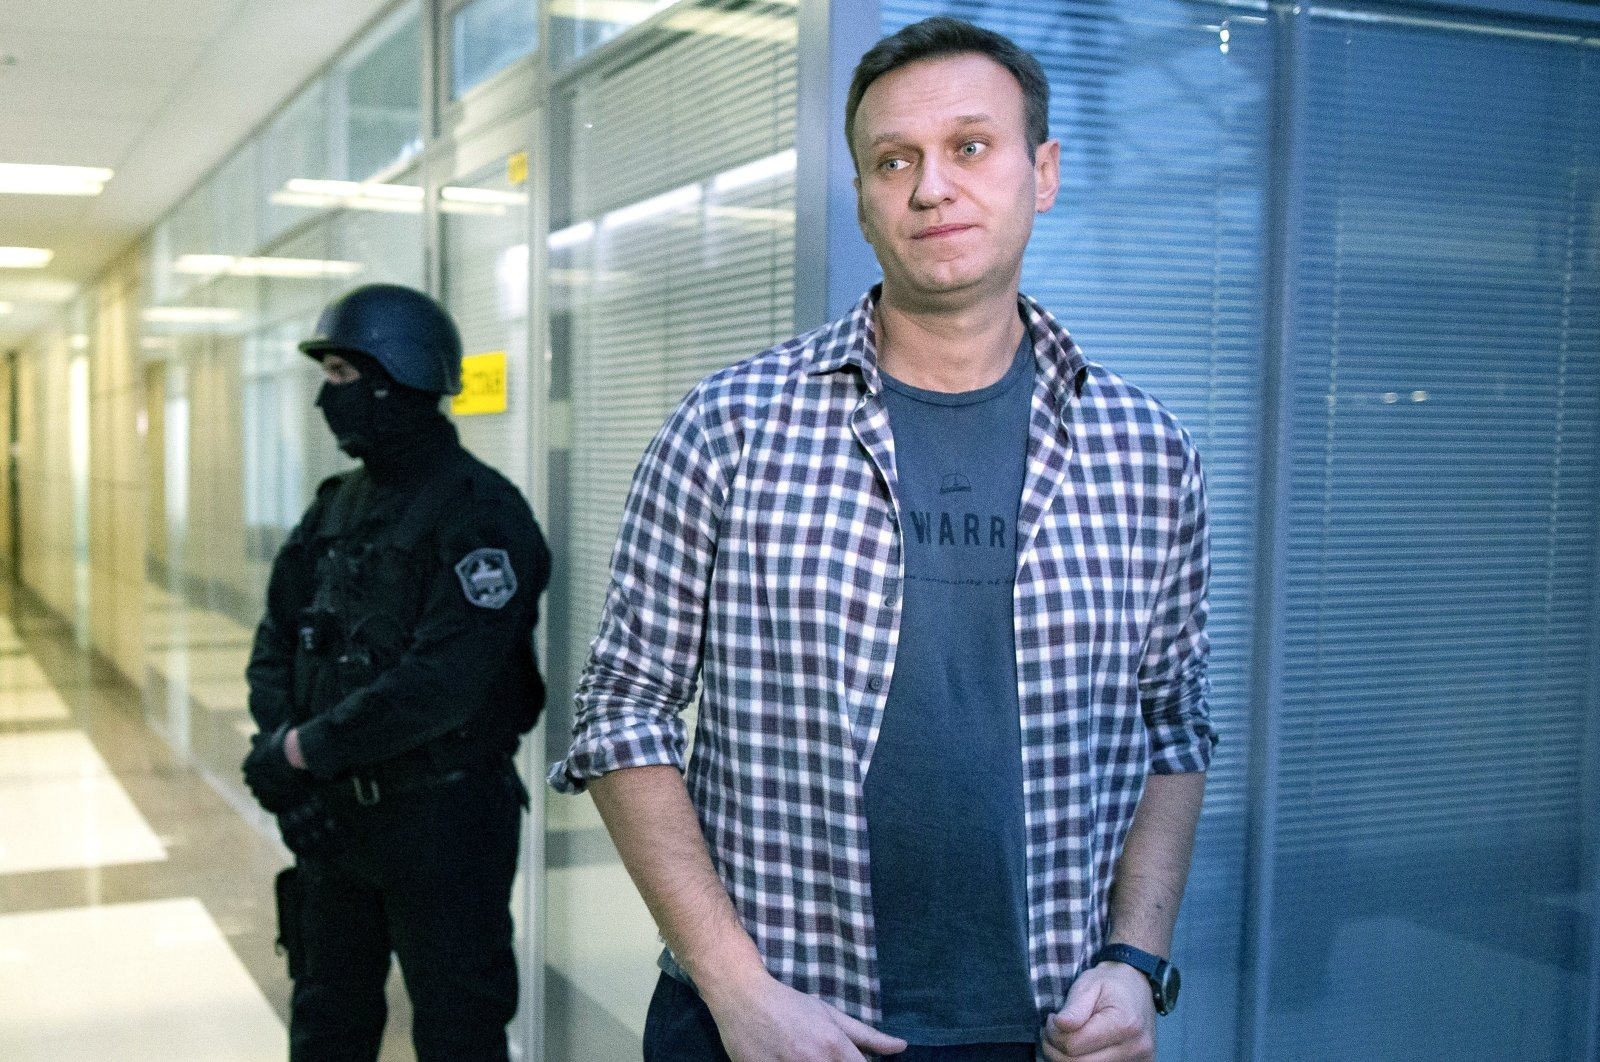 Russian opposition leader Alexei Navalny speaks to the media in front of a security officer standing guard at the Foundation for Fighting Corruption office in Moscow, Russia, Dec. 26, 2019. (AP Photo)